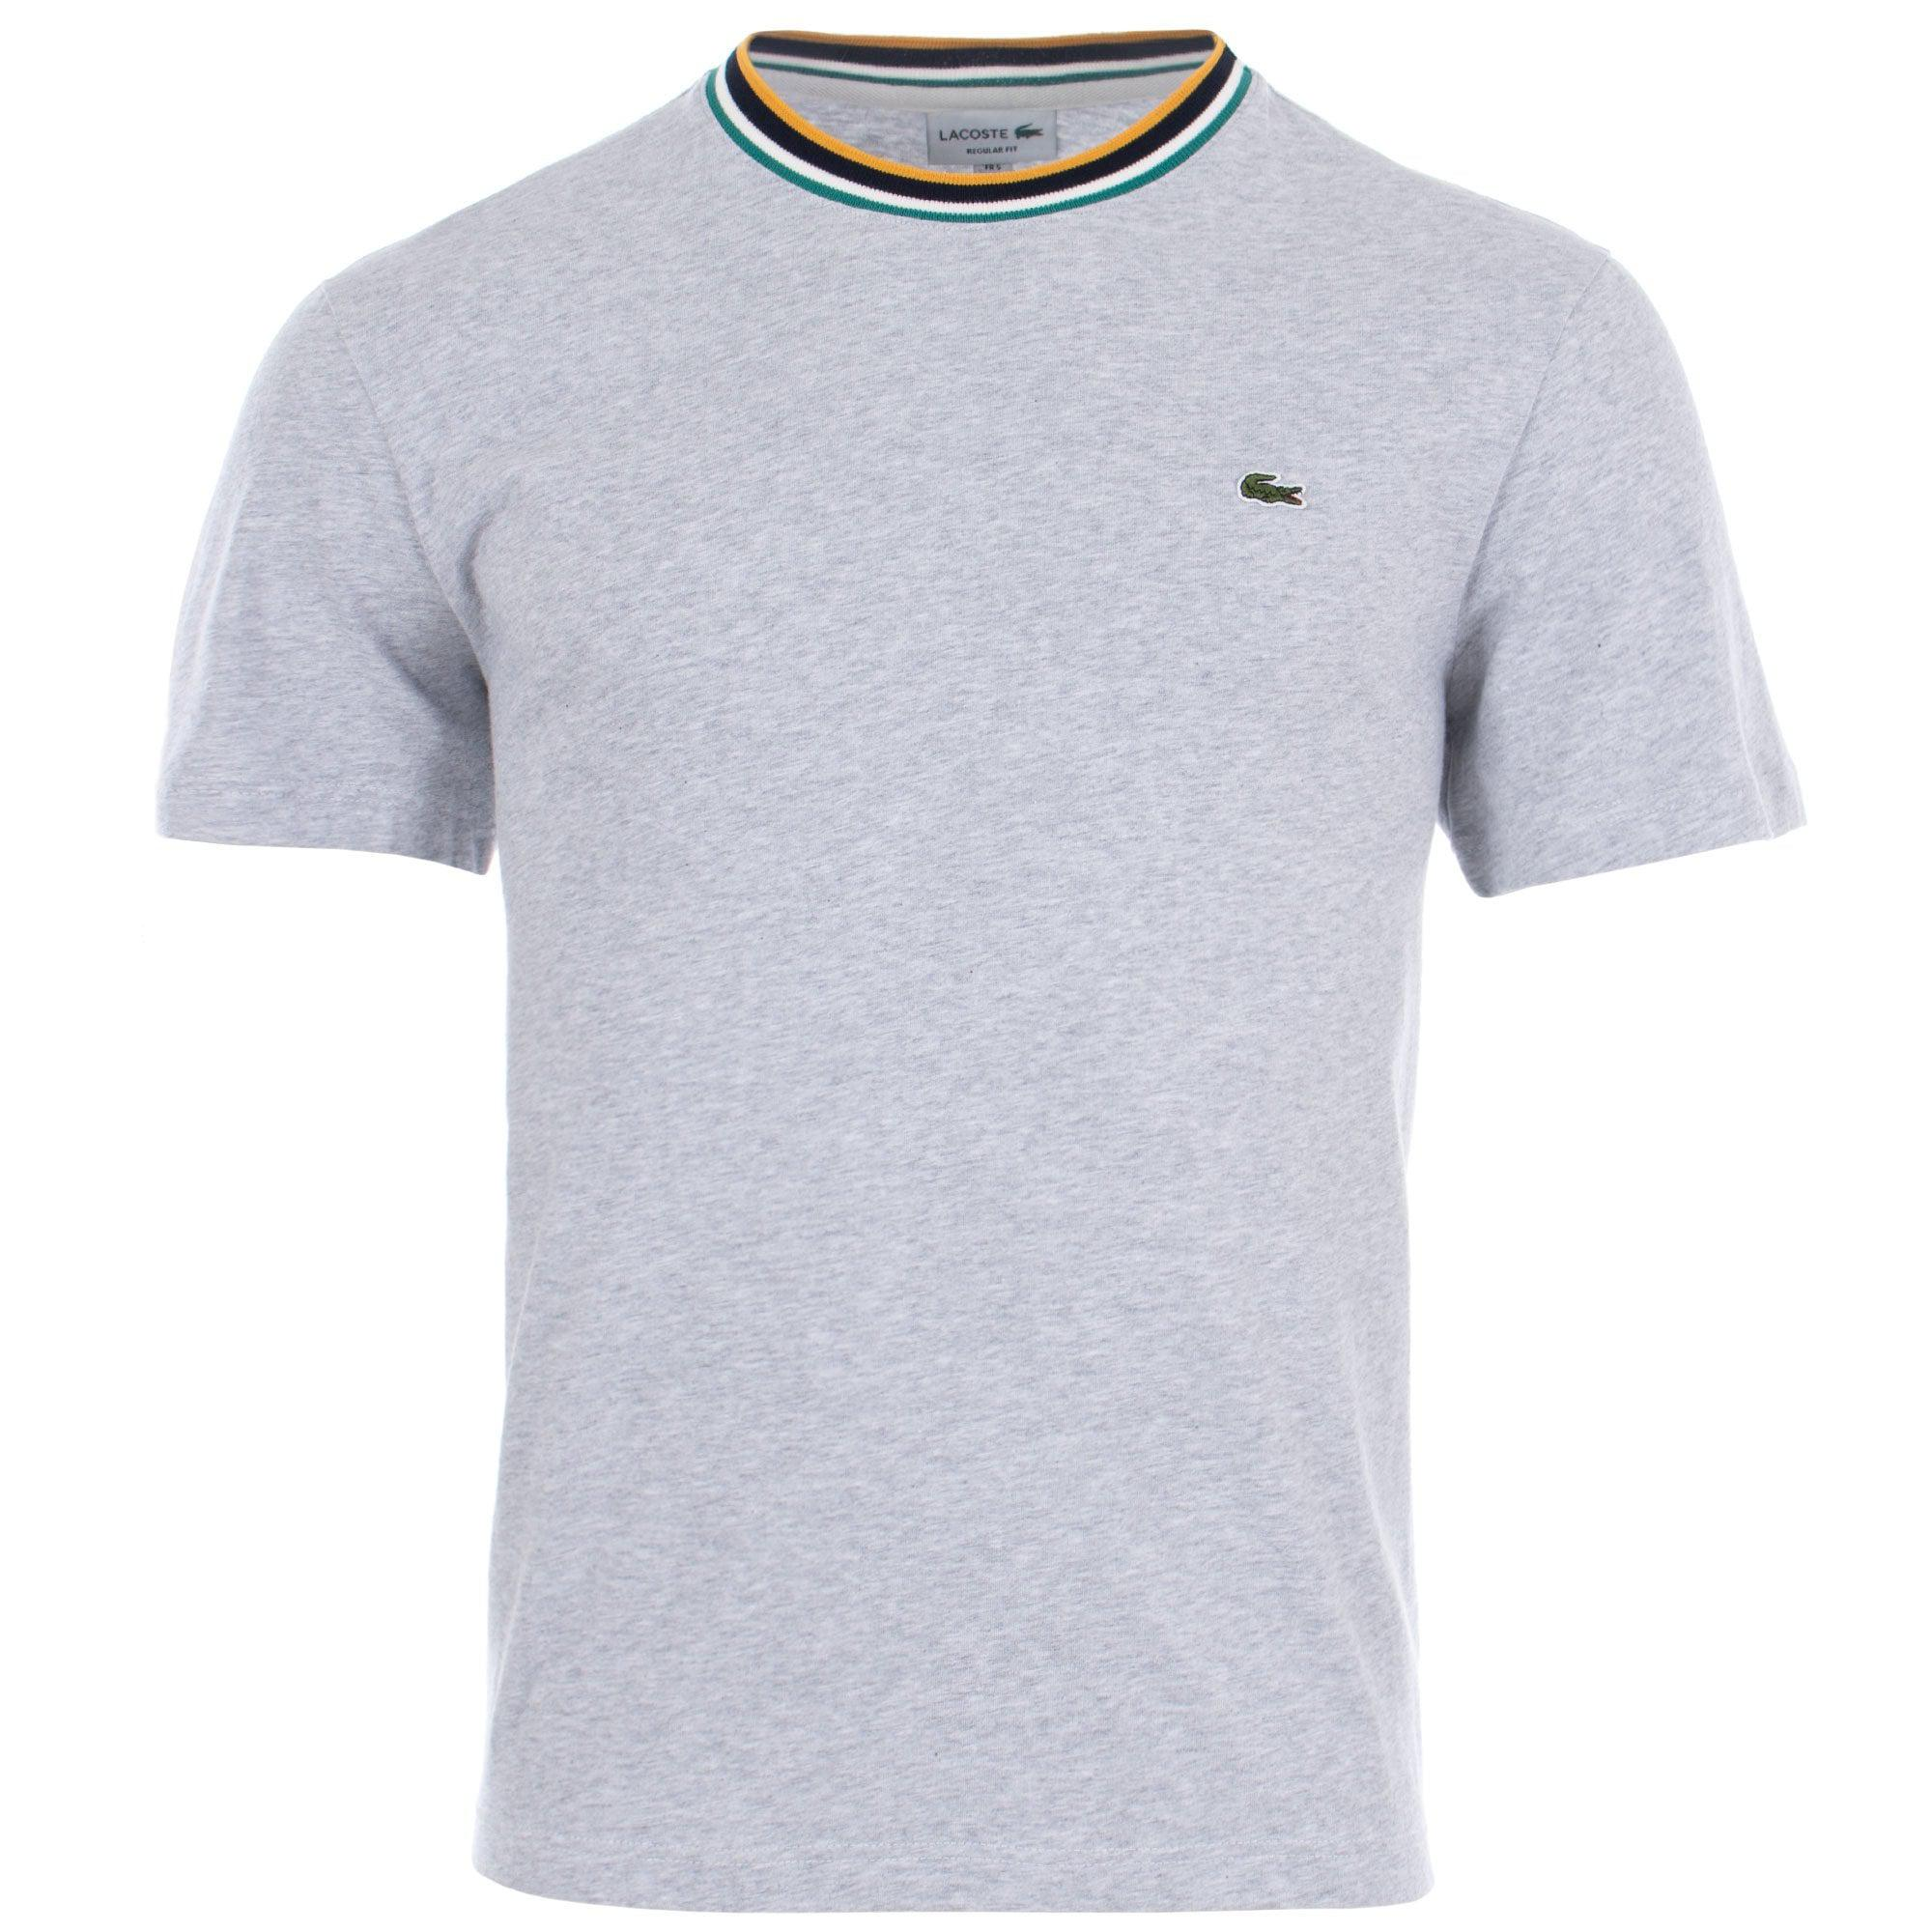 67ba9477 Lacoste Tipped Ribbed Crew Neck T-shirt in Gray for Men - Lyst